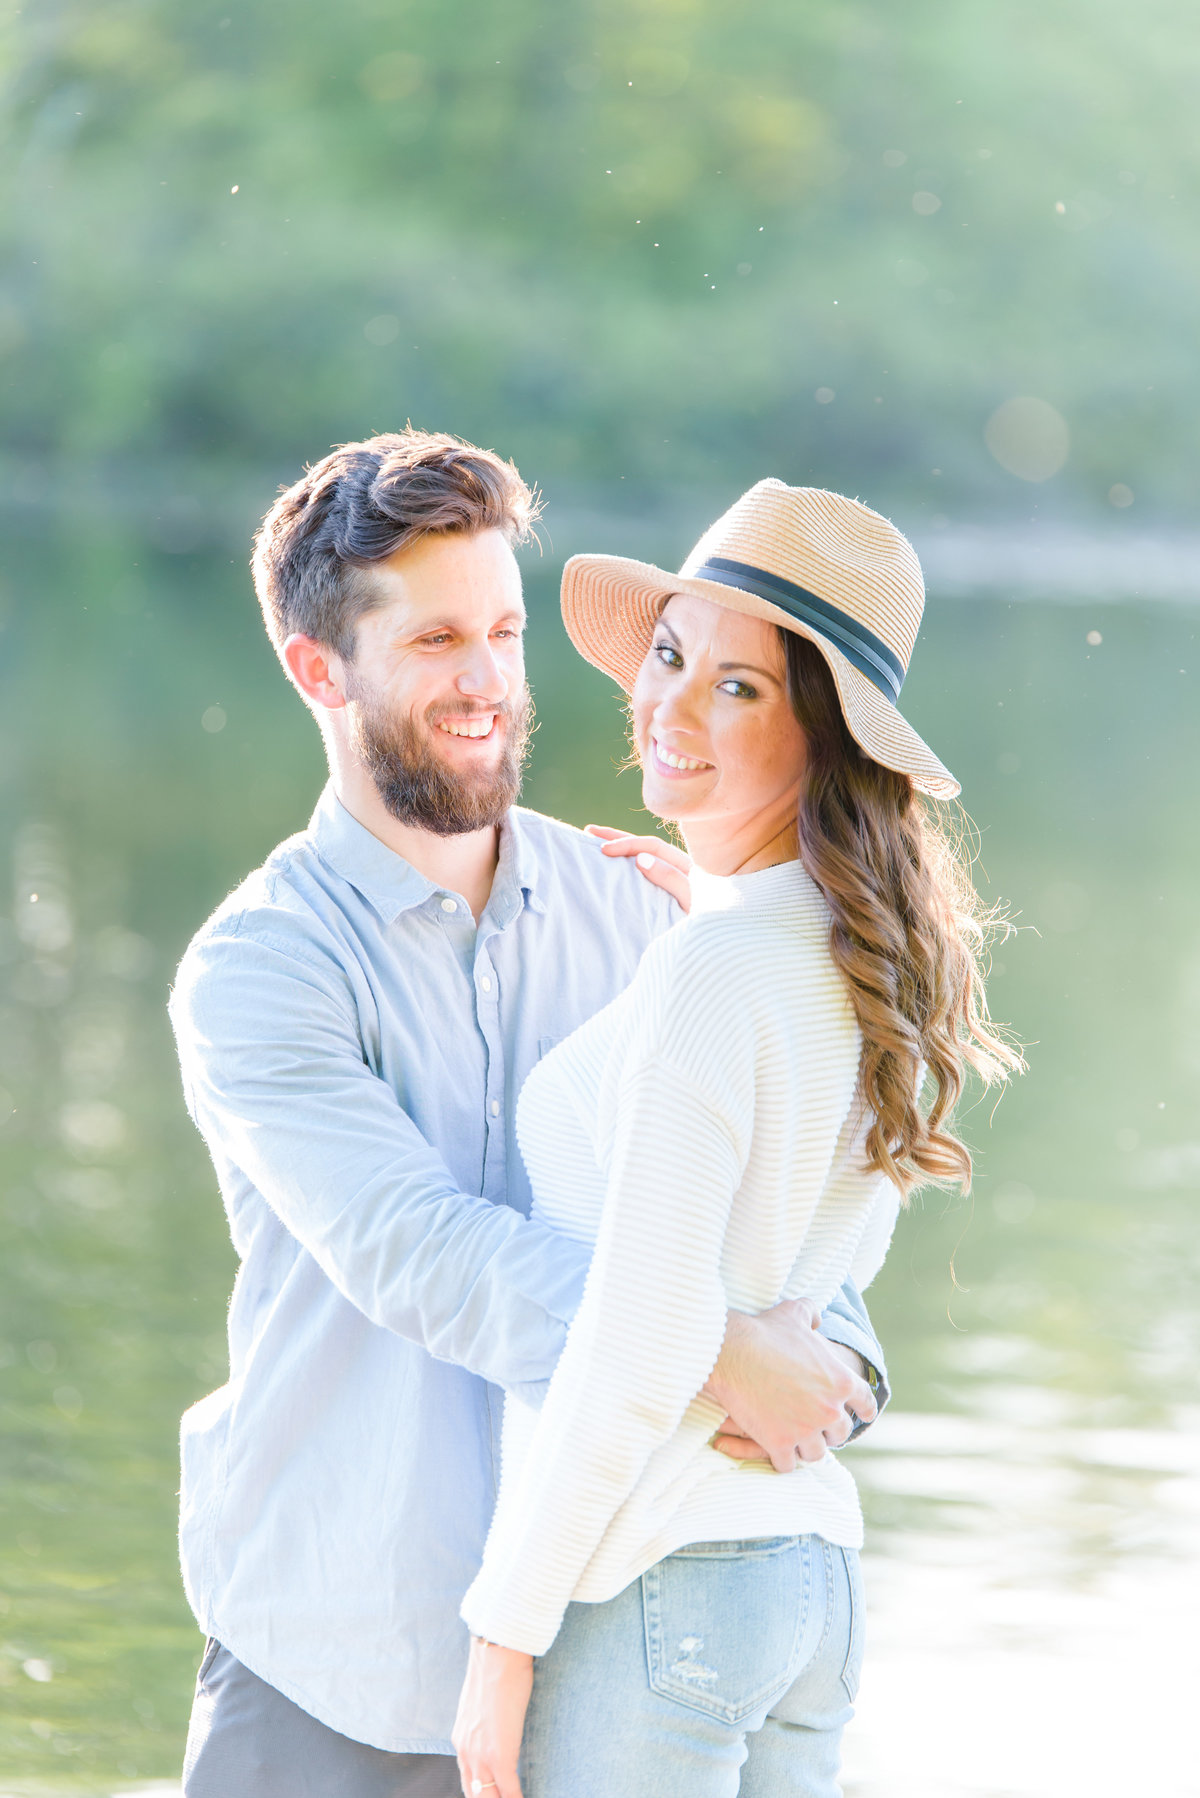 PORTFOLIO-2018-05-21 Casey and Jack Engagement Session 256020-8